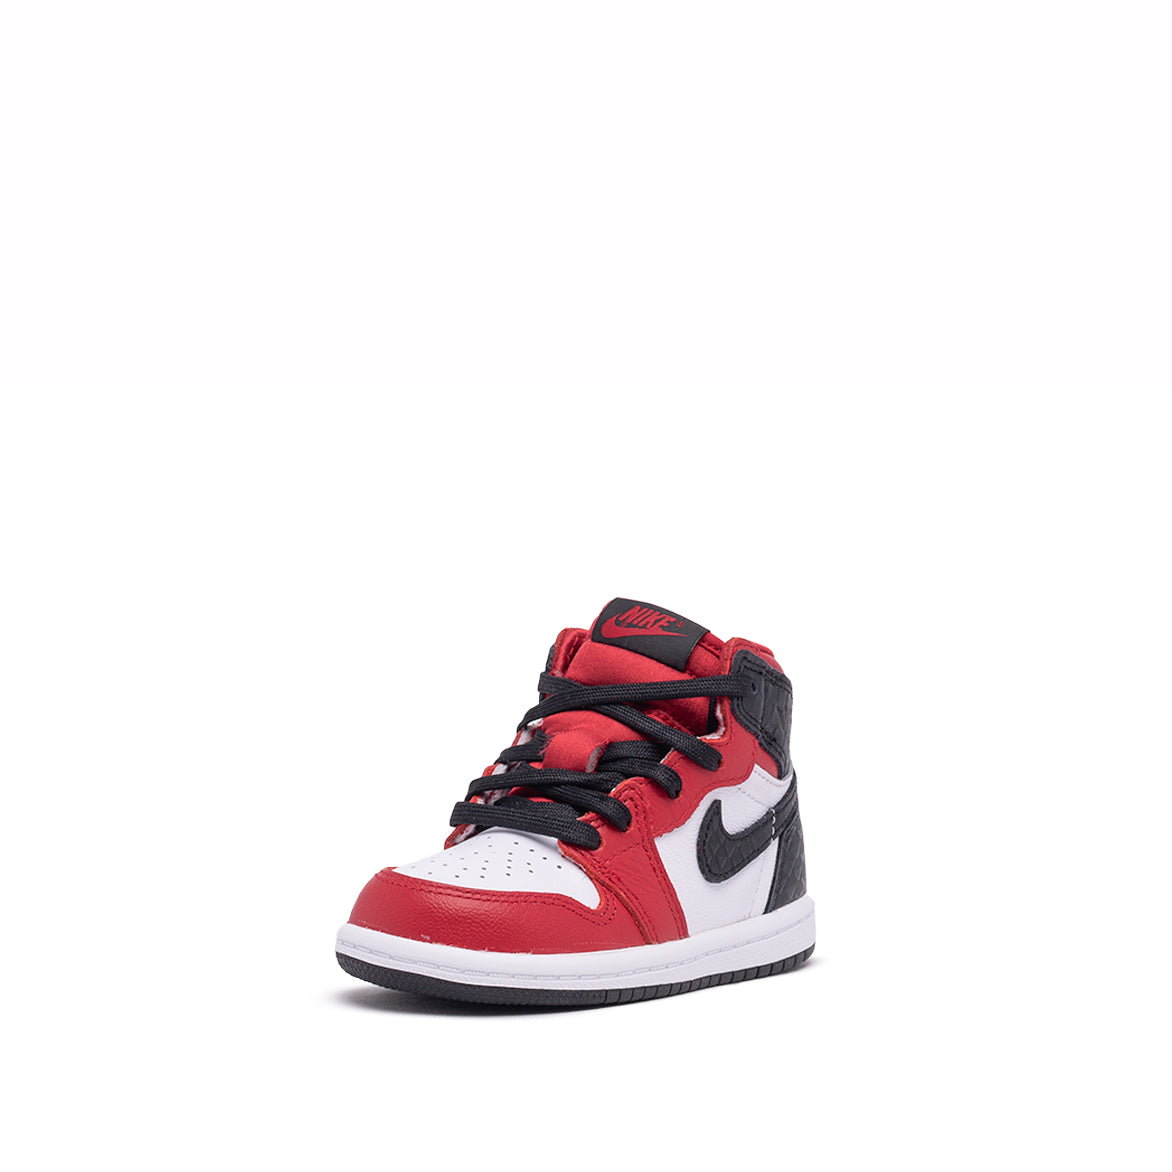 "AIR JORDAN 1 RETRO HIGH OG (TD) ""SATIN RED"""